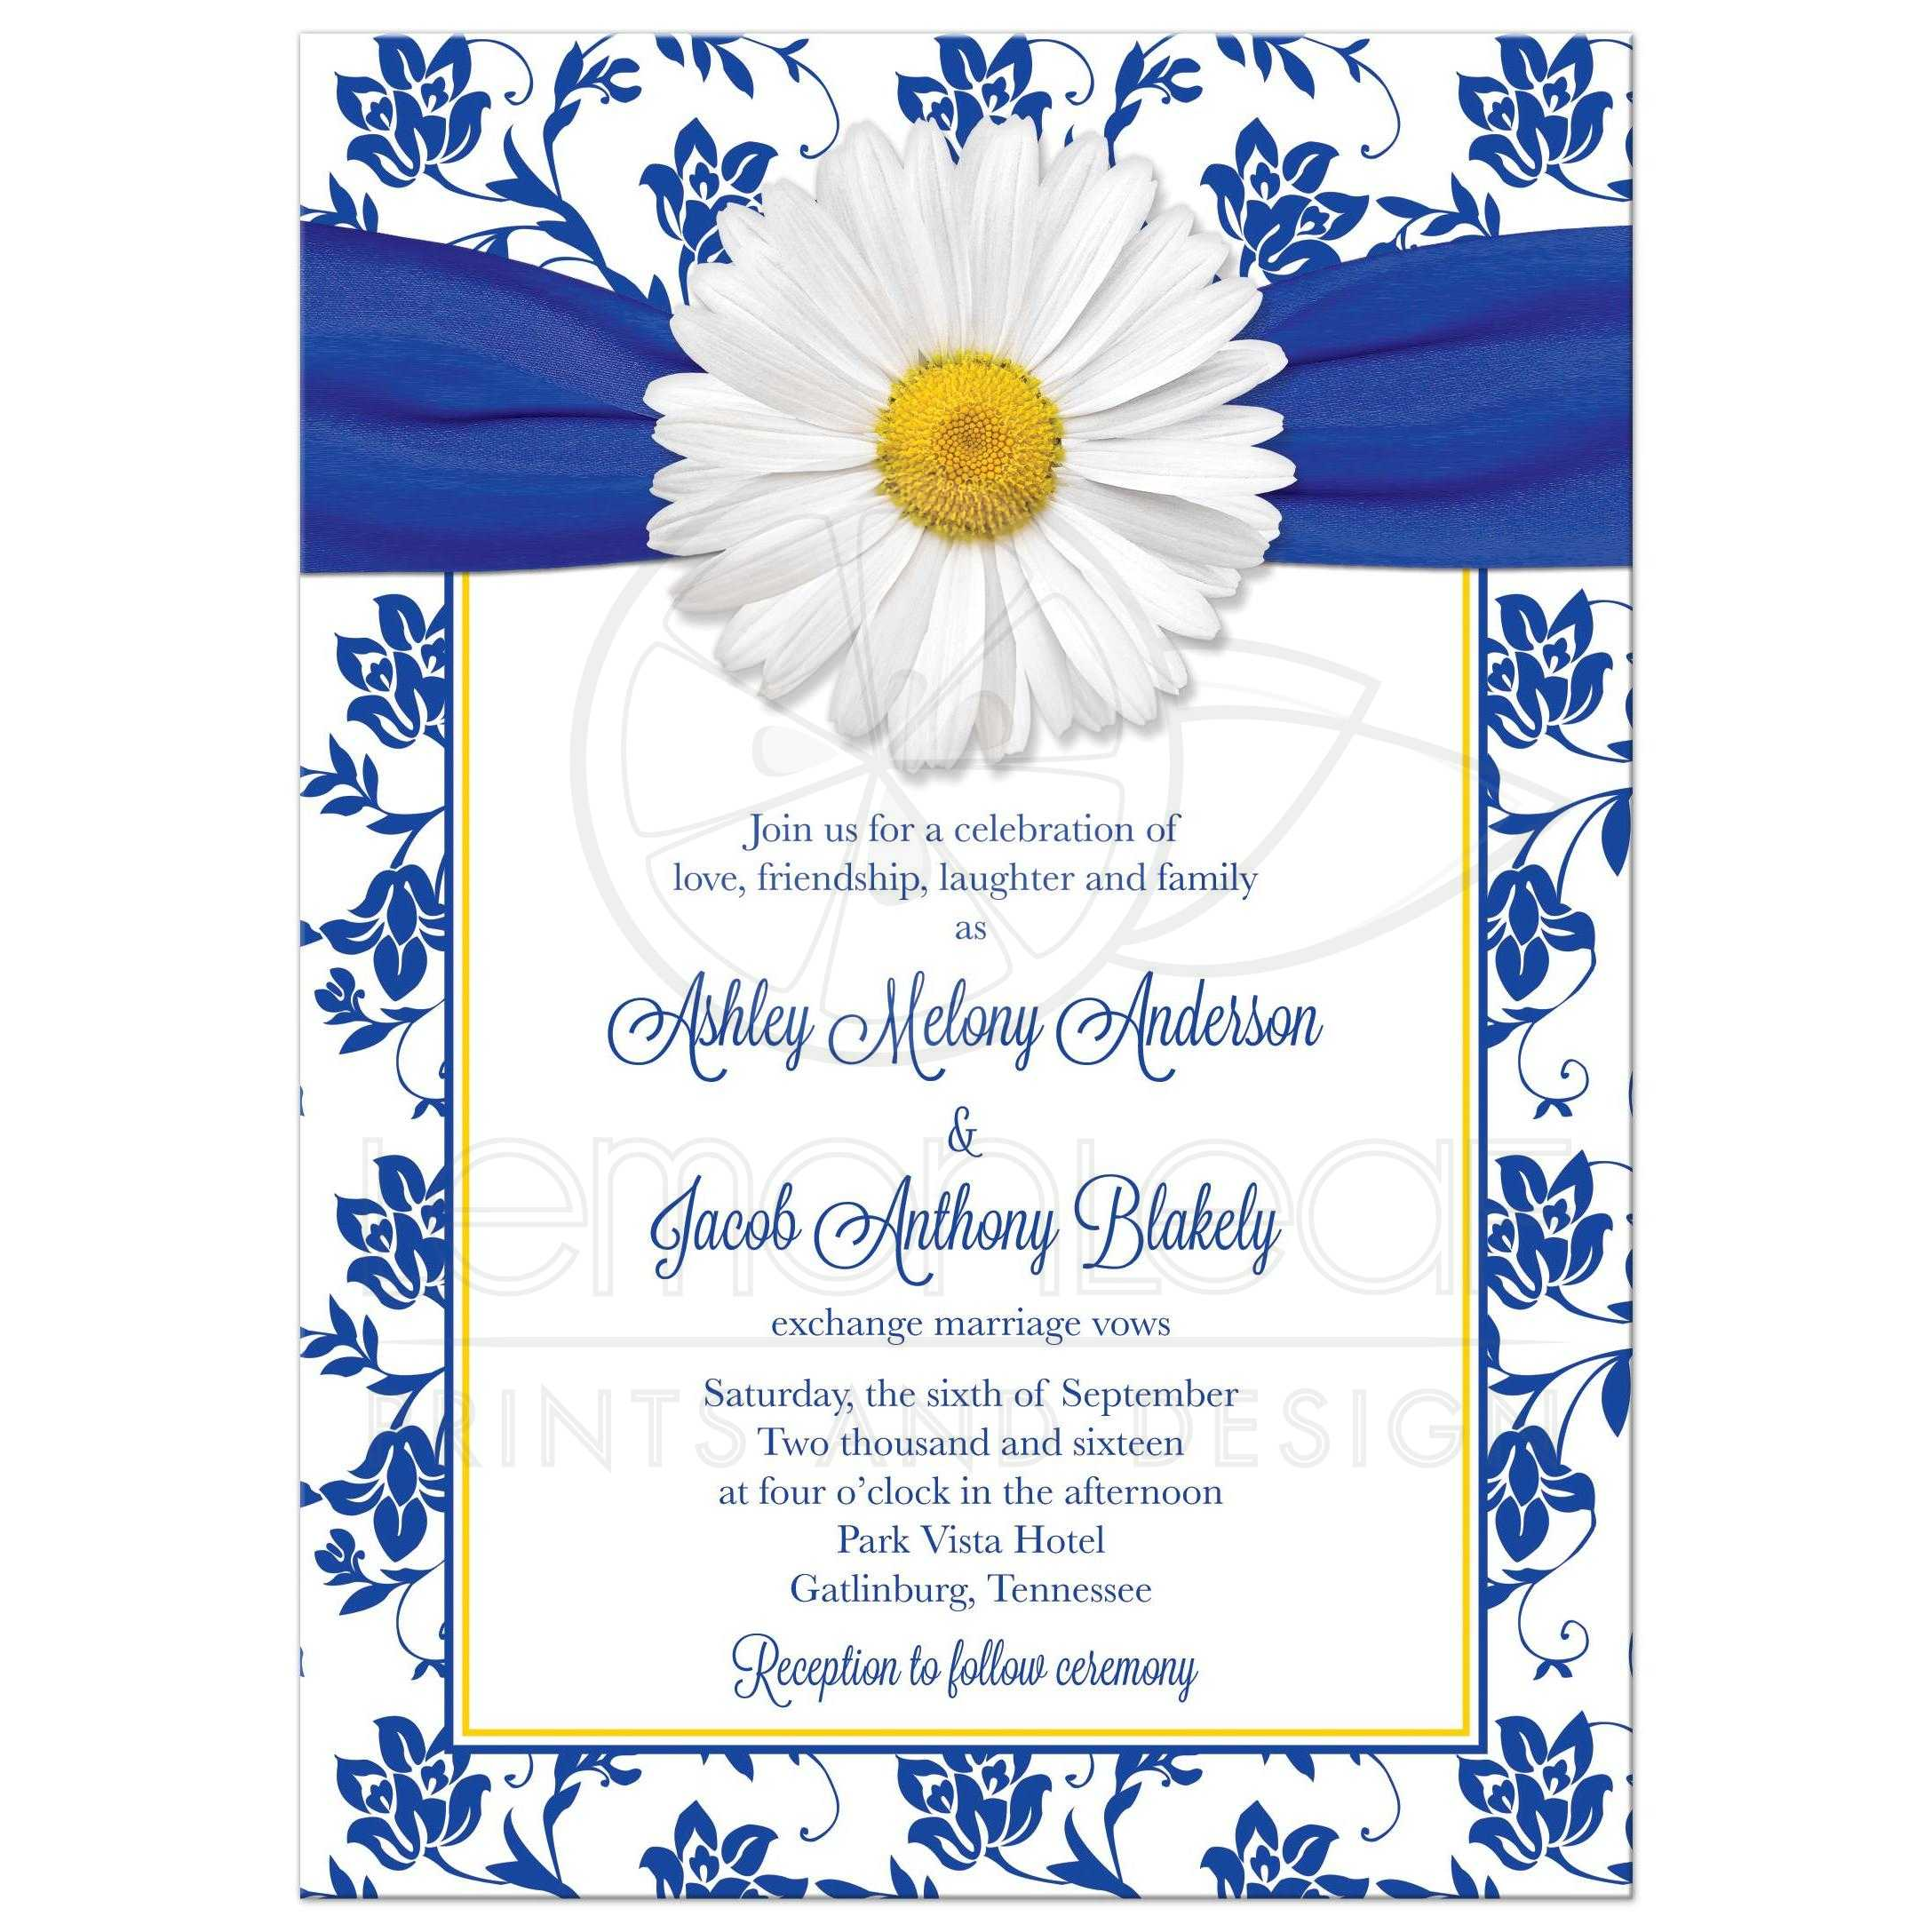 White Shasta Daisy And Royal Blue Floral Damask Ribbon Wedding Invitation Front